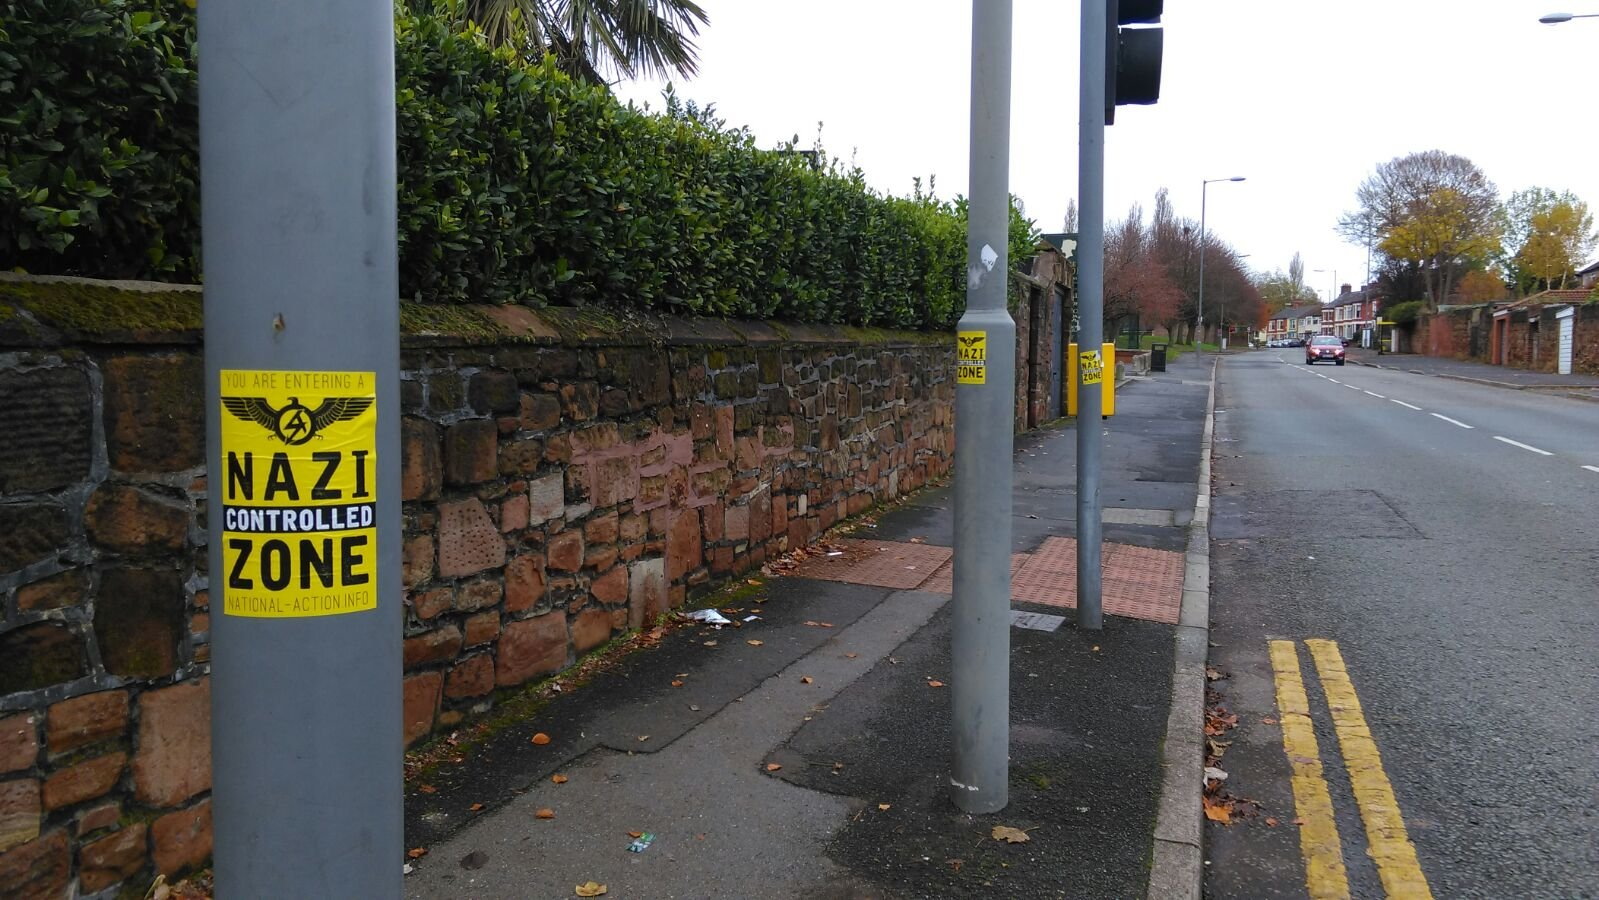 'Nazi Controlled Zone' stickers have gone up in L17